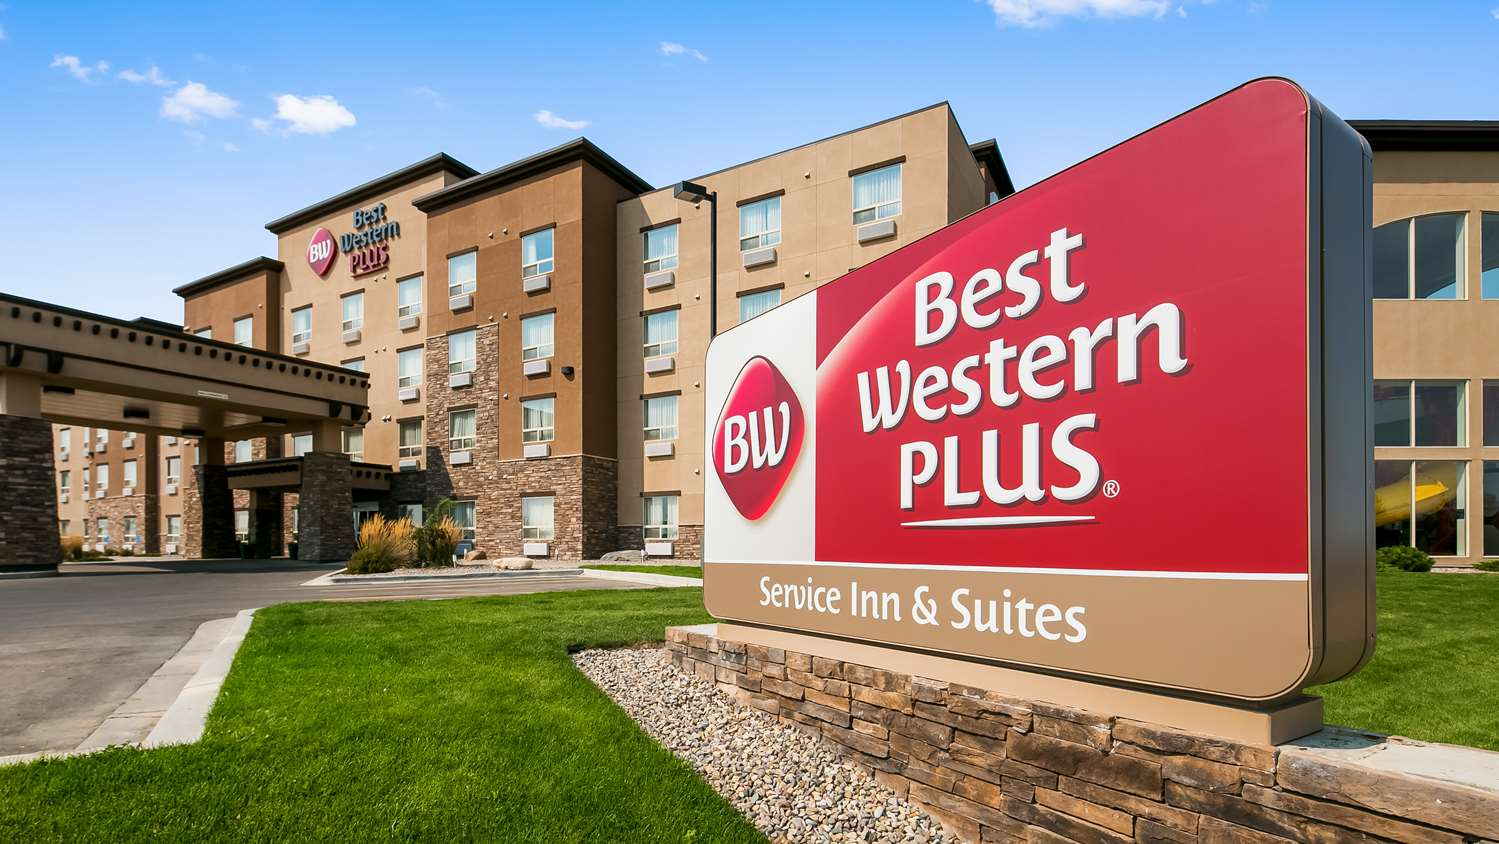 Exterior view - Best Western Plus Service Inn Lethbridge